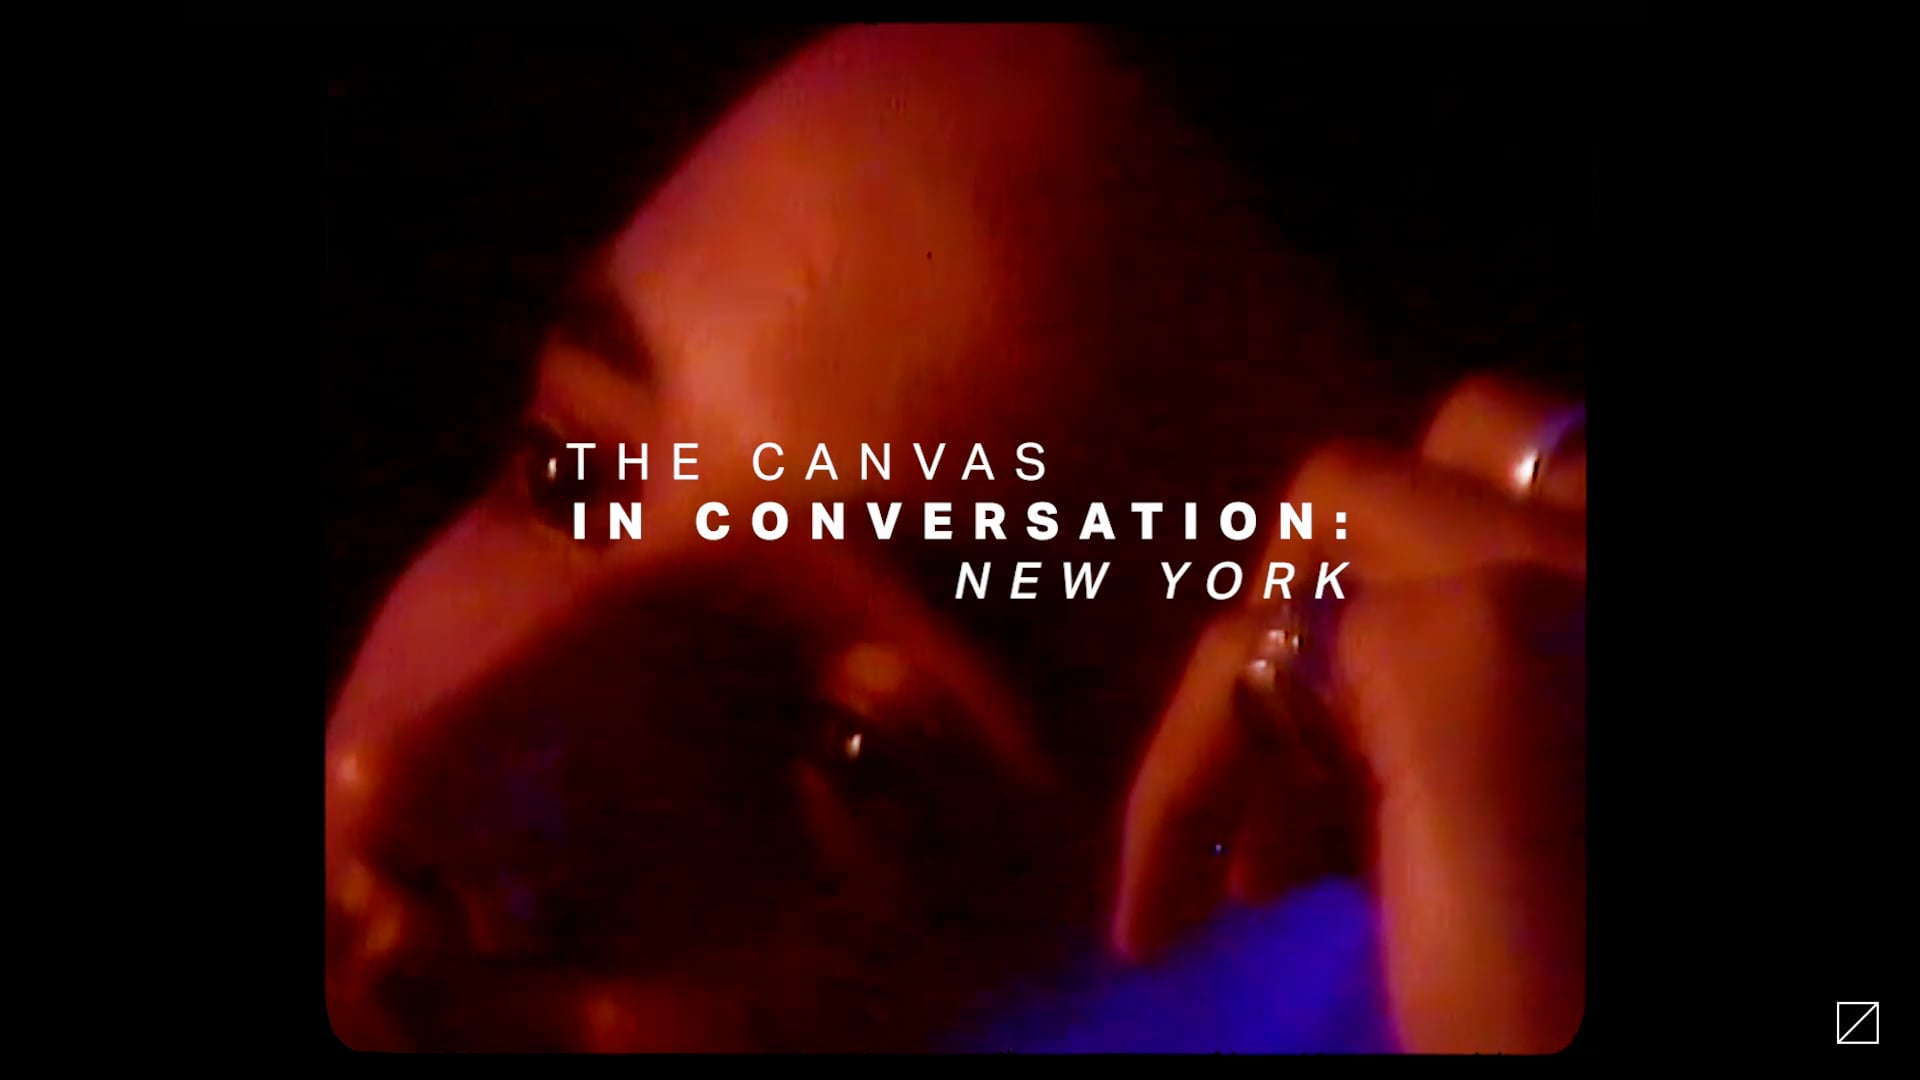 The Canvas in Conversation: New York featuring donSMITH - The Interview